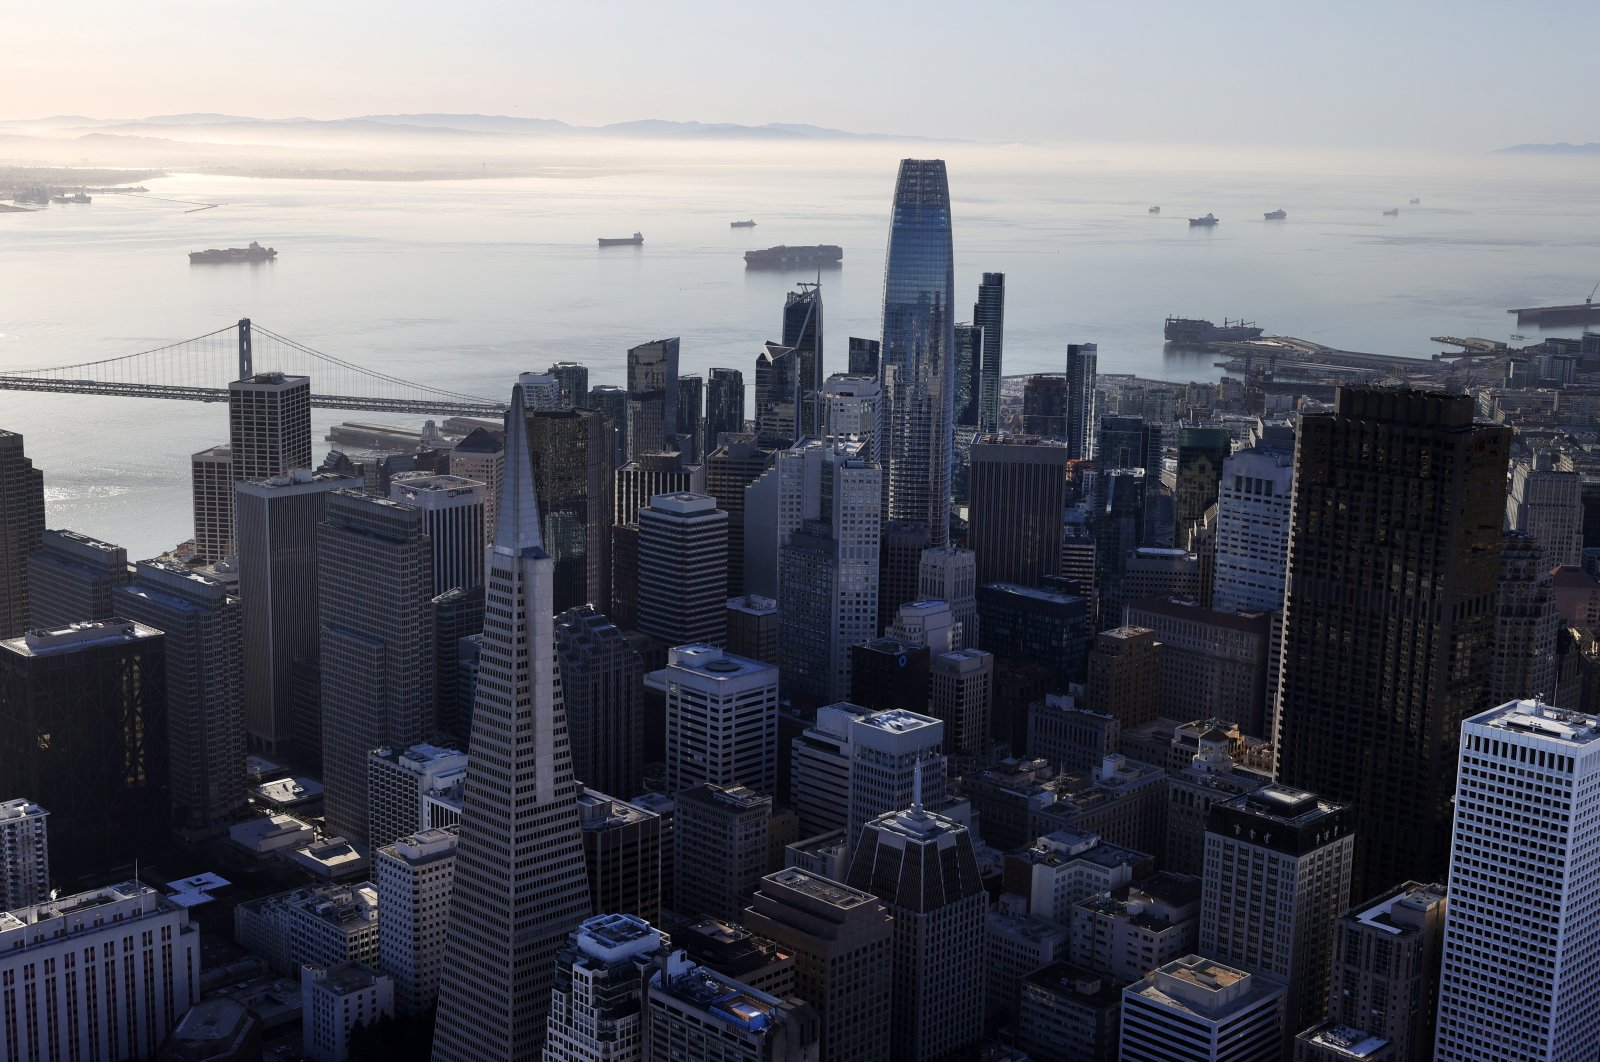 Container ships sit idle in San Francisco Bay amid the coronavirus outbreak, just outside of the Port of Oakland, San Francisco, California, U.S., March 26, 2021. (Photo by Getty Images)